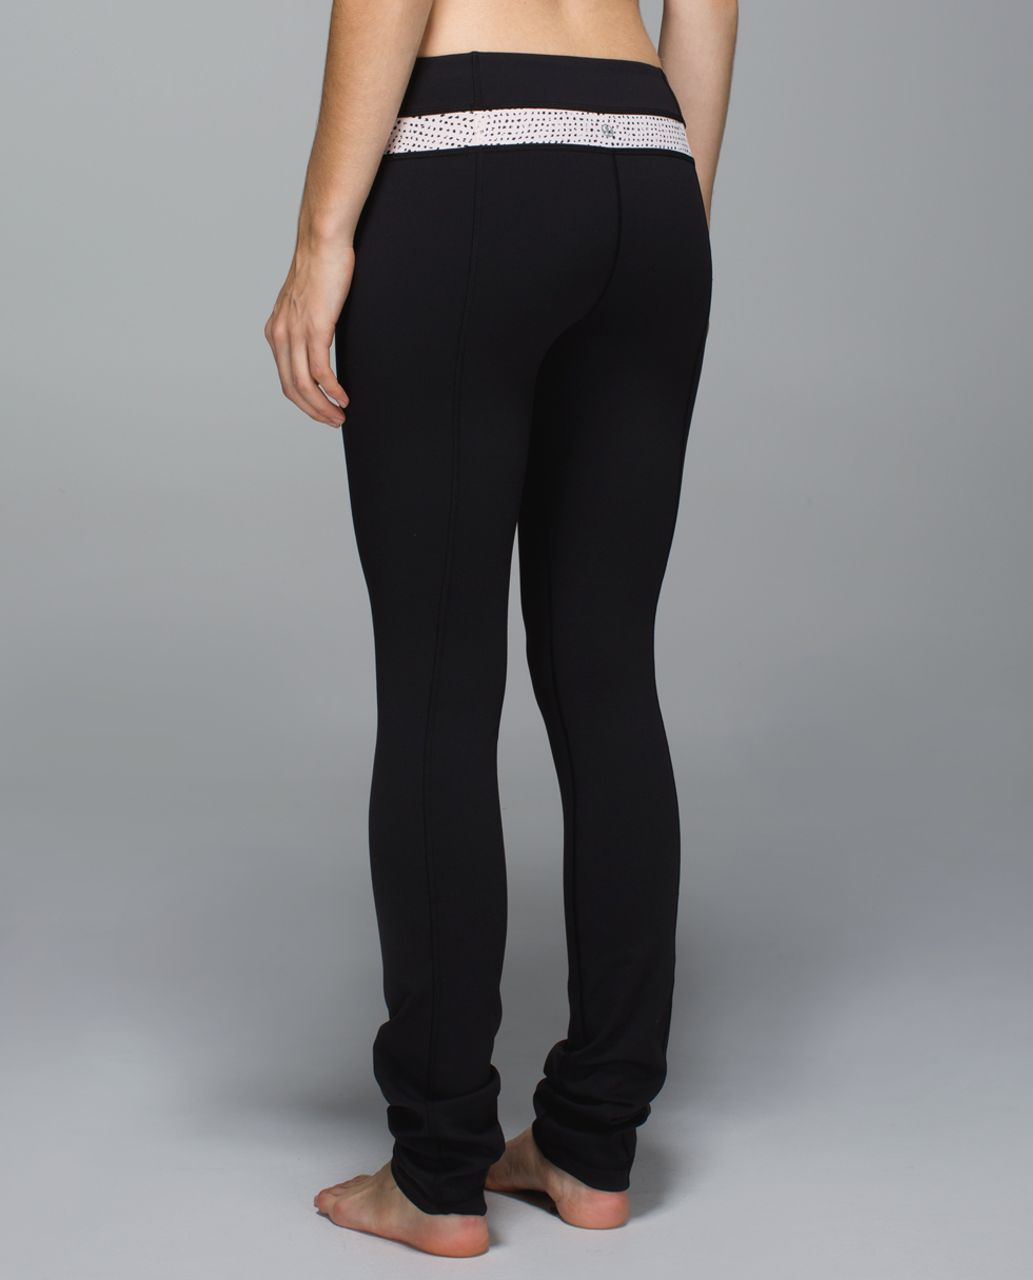 81133f7b7 Lululemon Skinny Groove Pant  Full-On Luon - Black   Speckle Dot Parfait  Pink Black - lulu fanatics